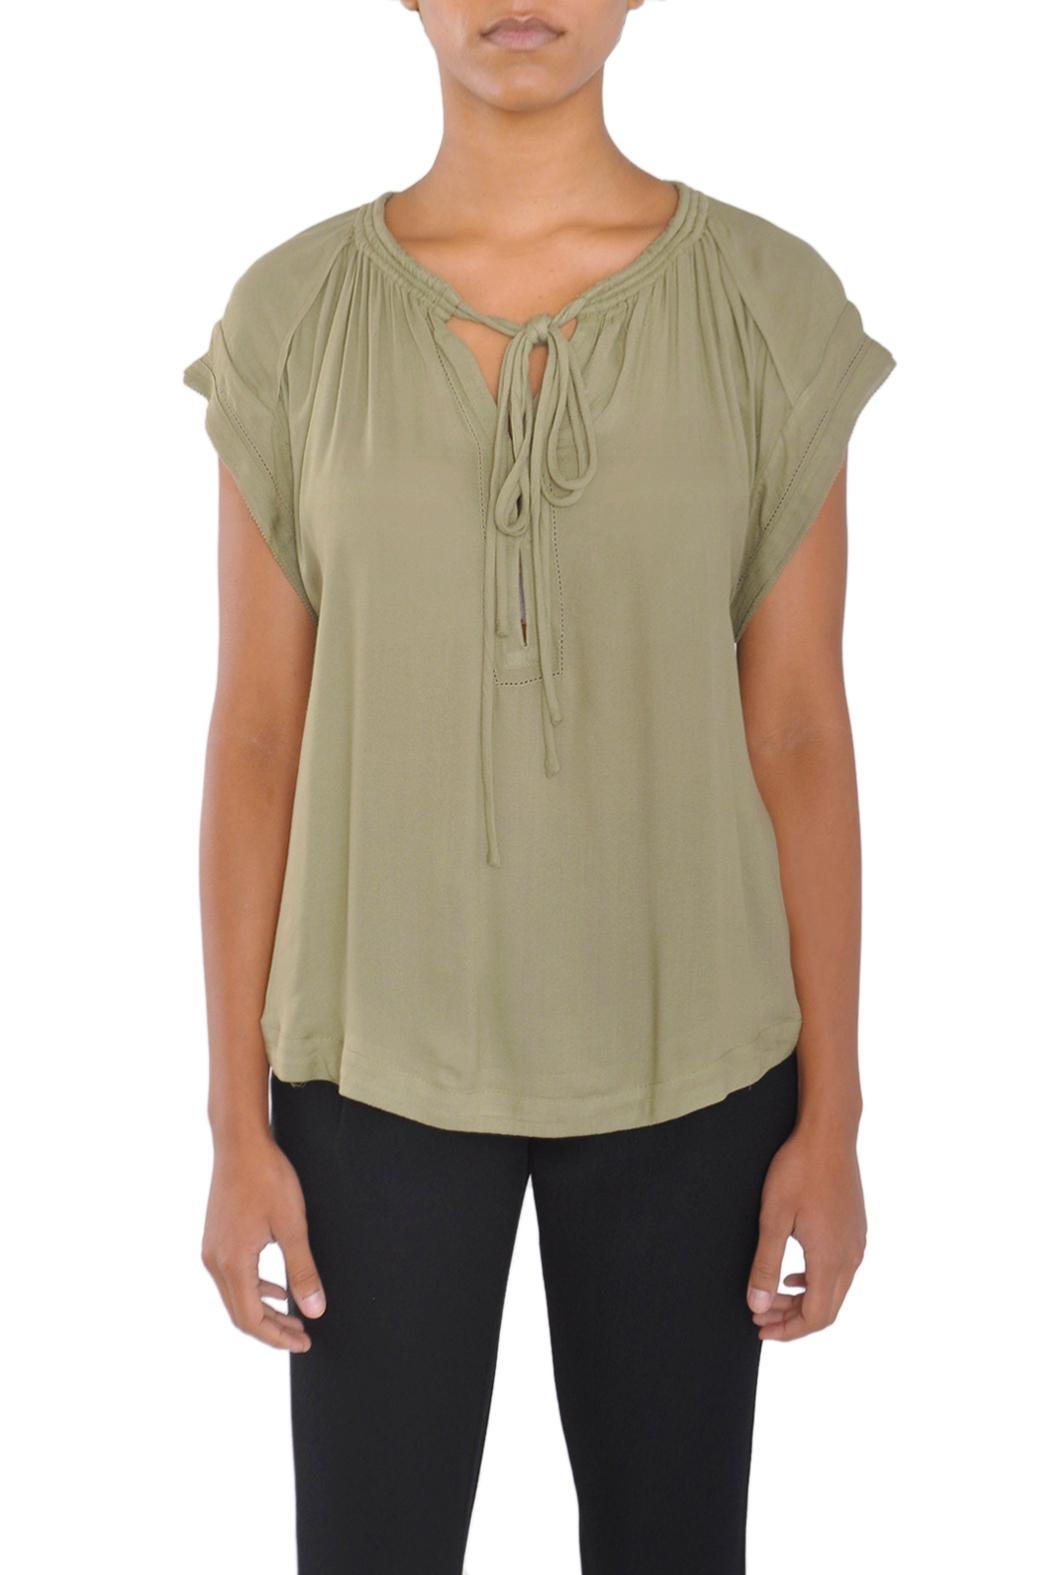 See U Soon Green Blouse Top - Main Image